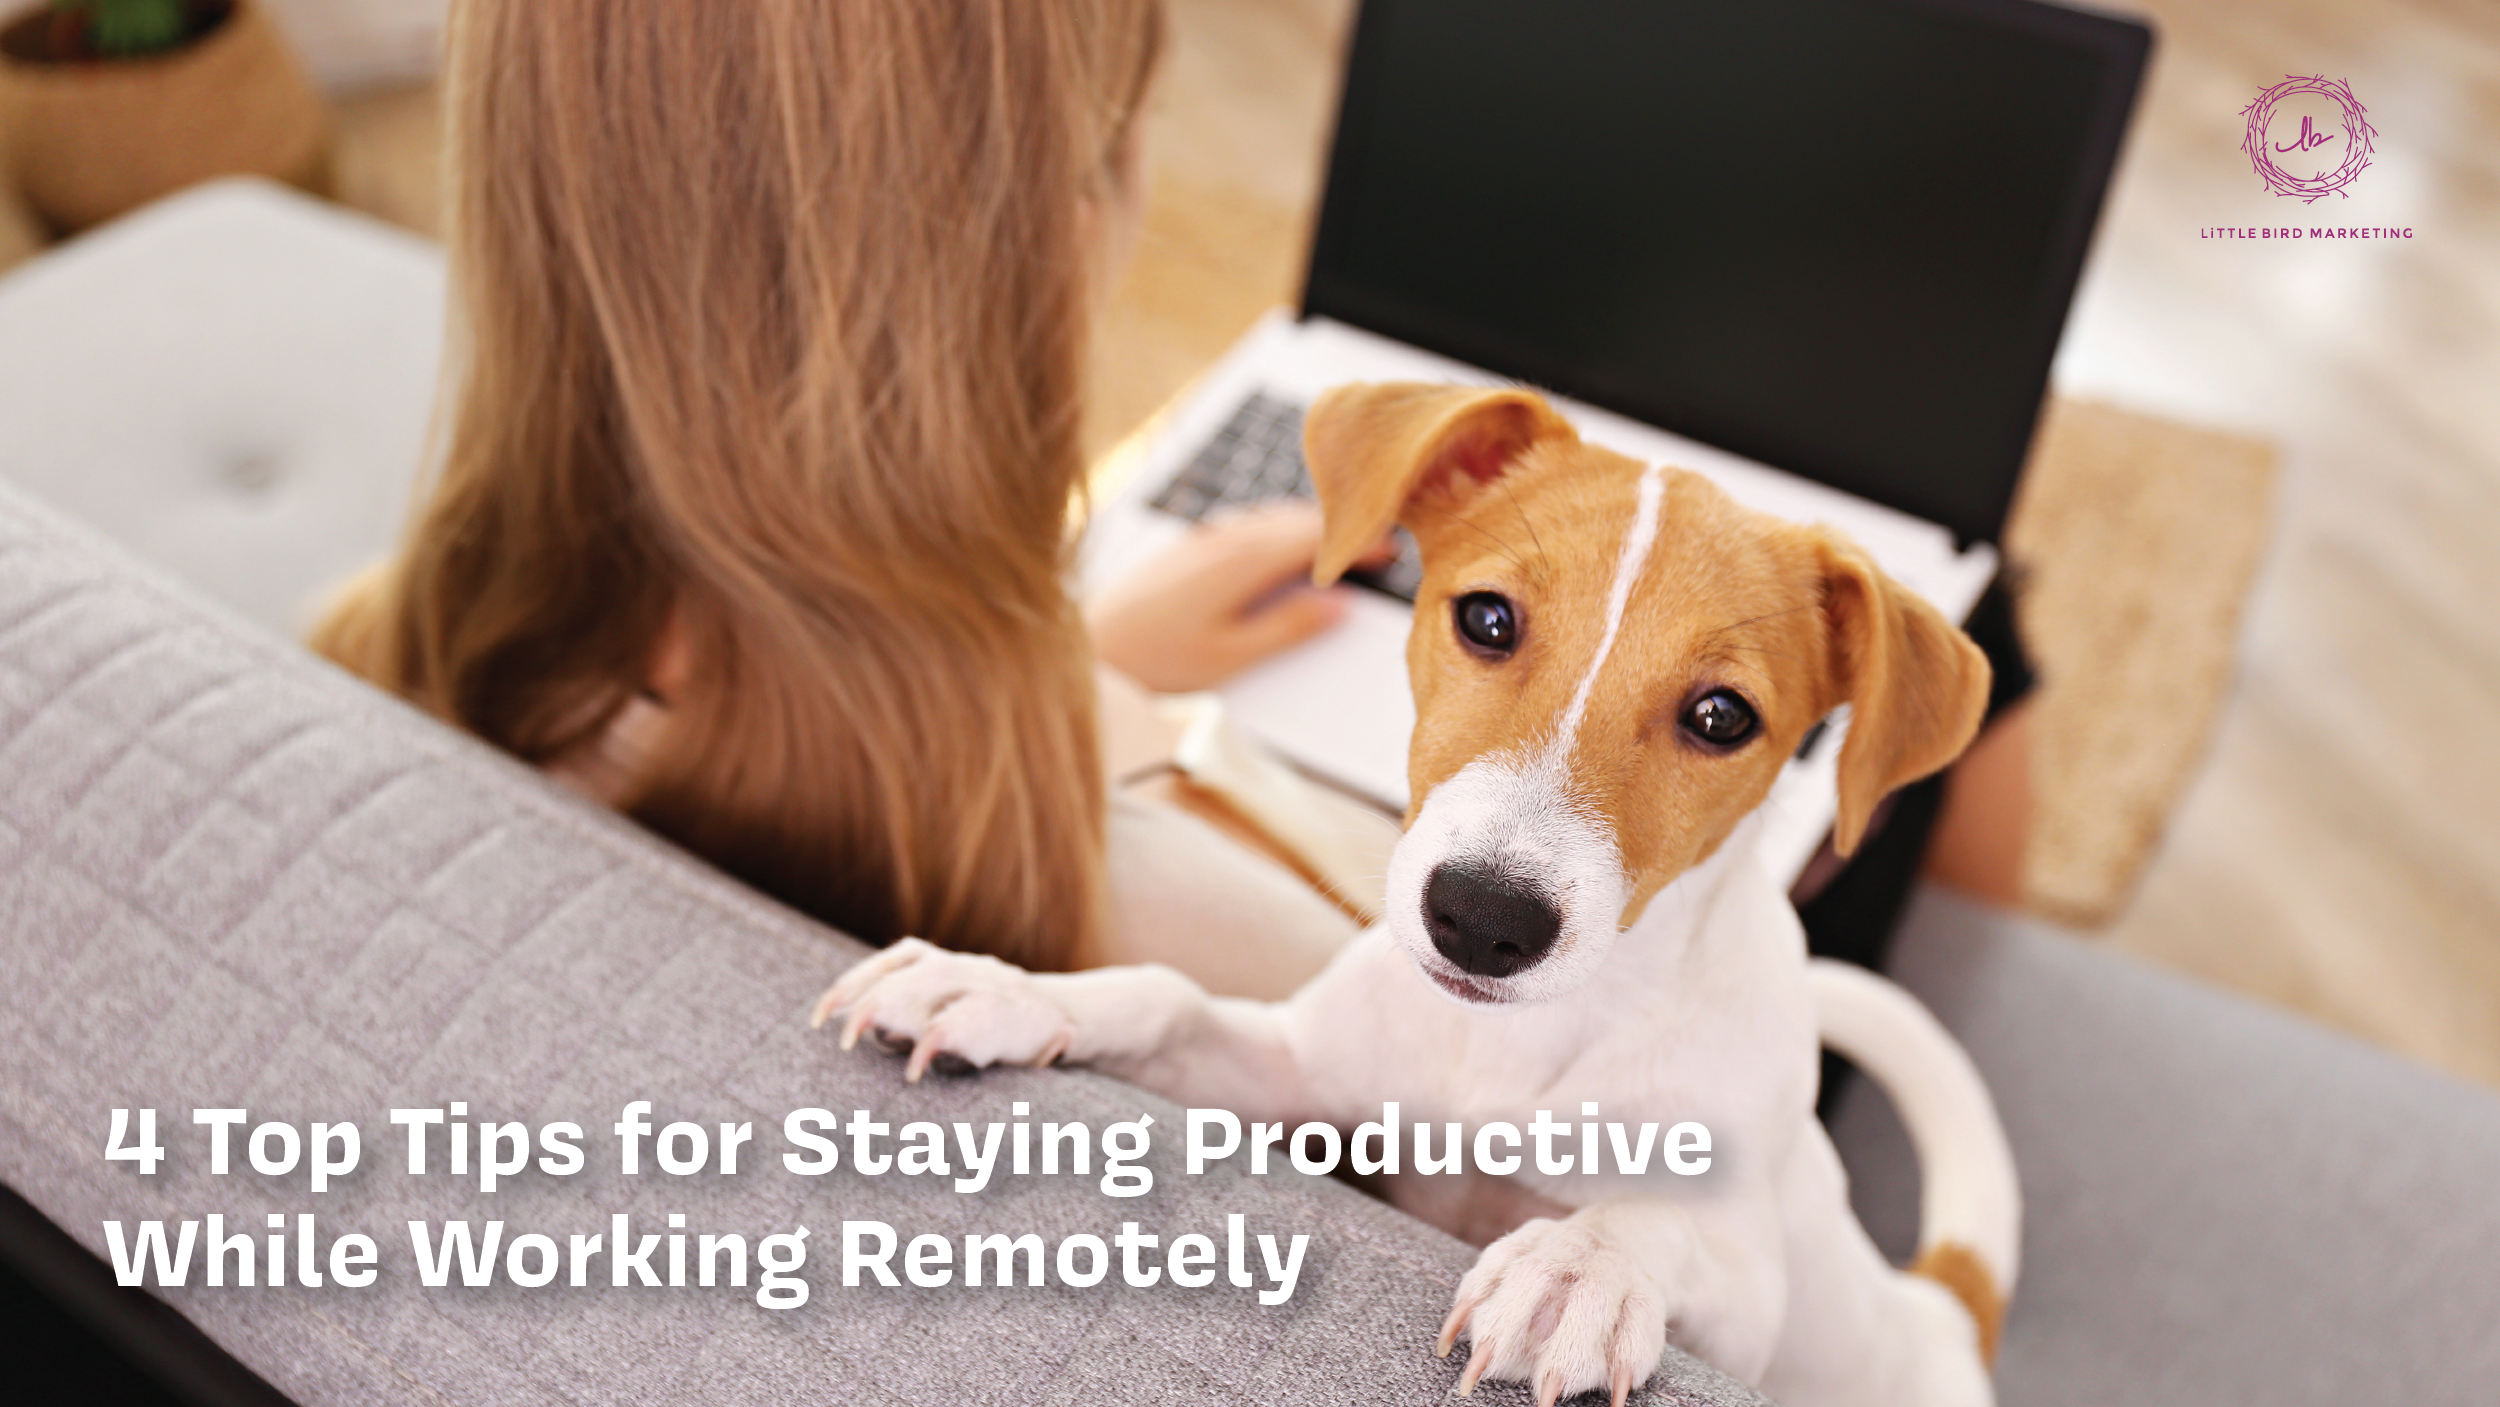 4 Top Tips for Staying Productive While Working Remotely